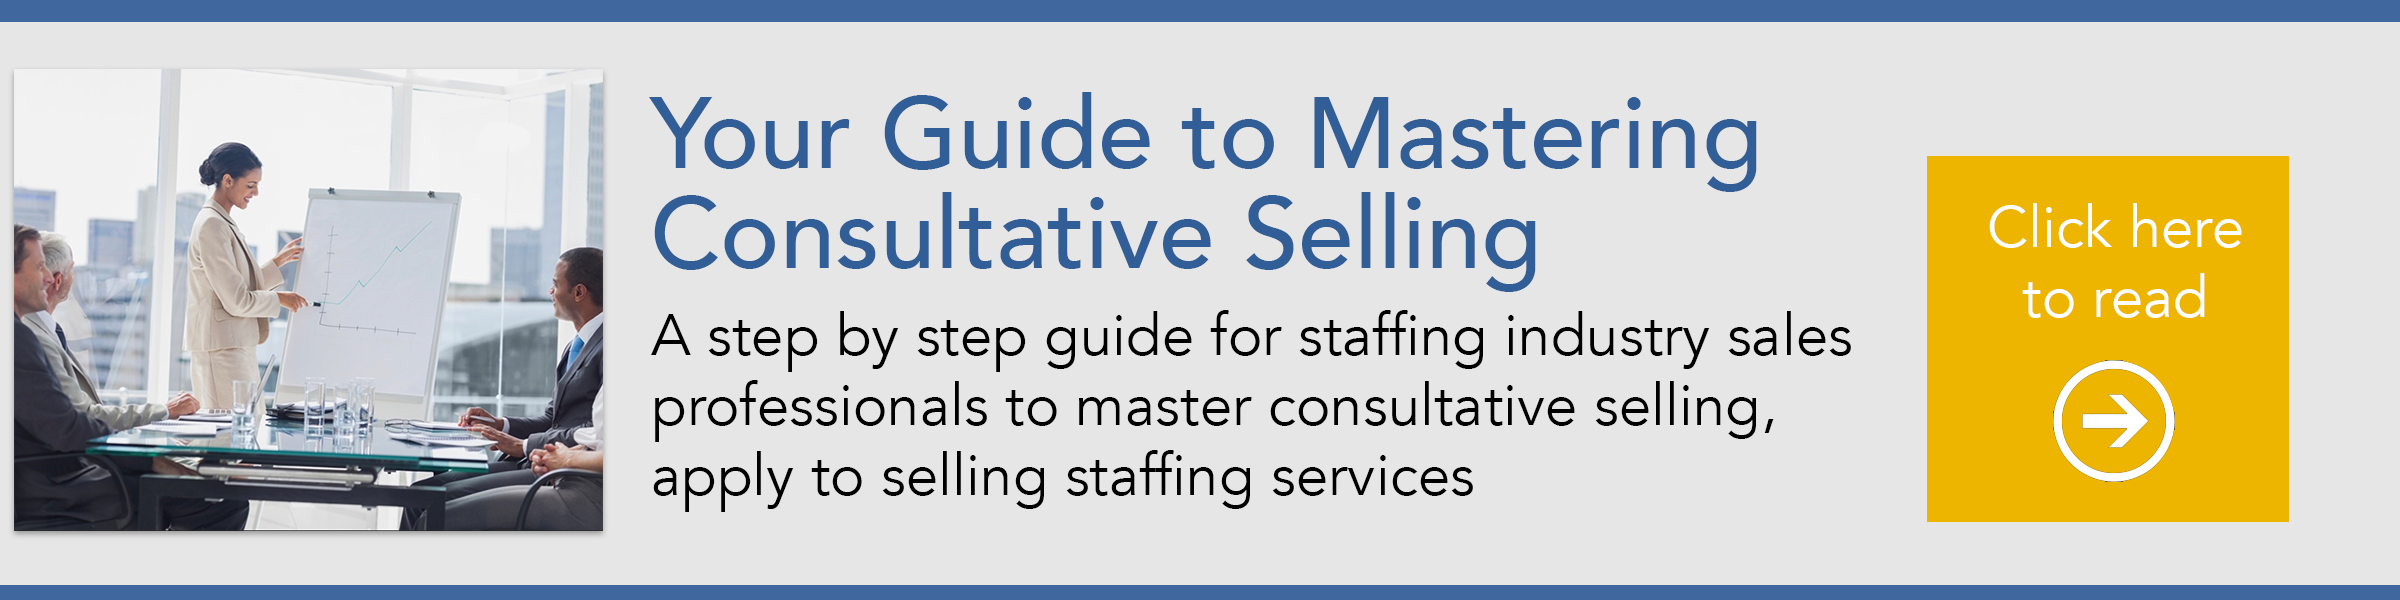 Your Guide to Mastering Consultative Selling